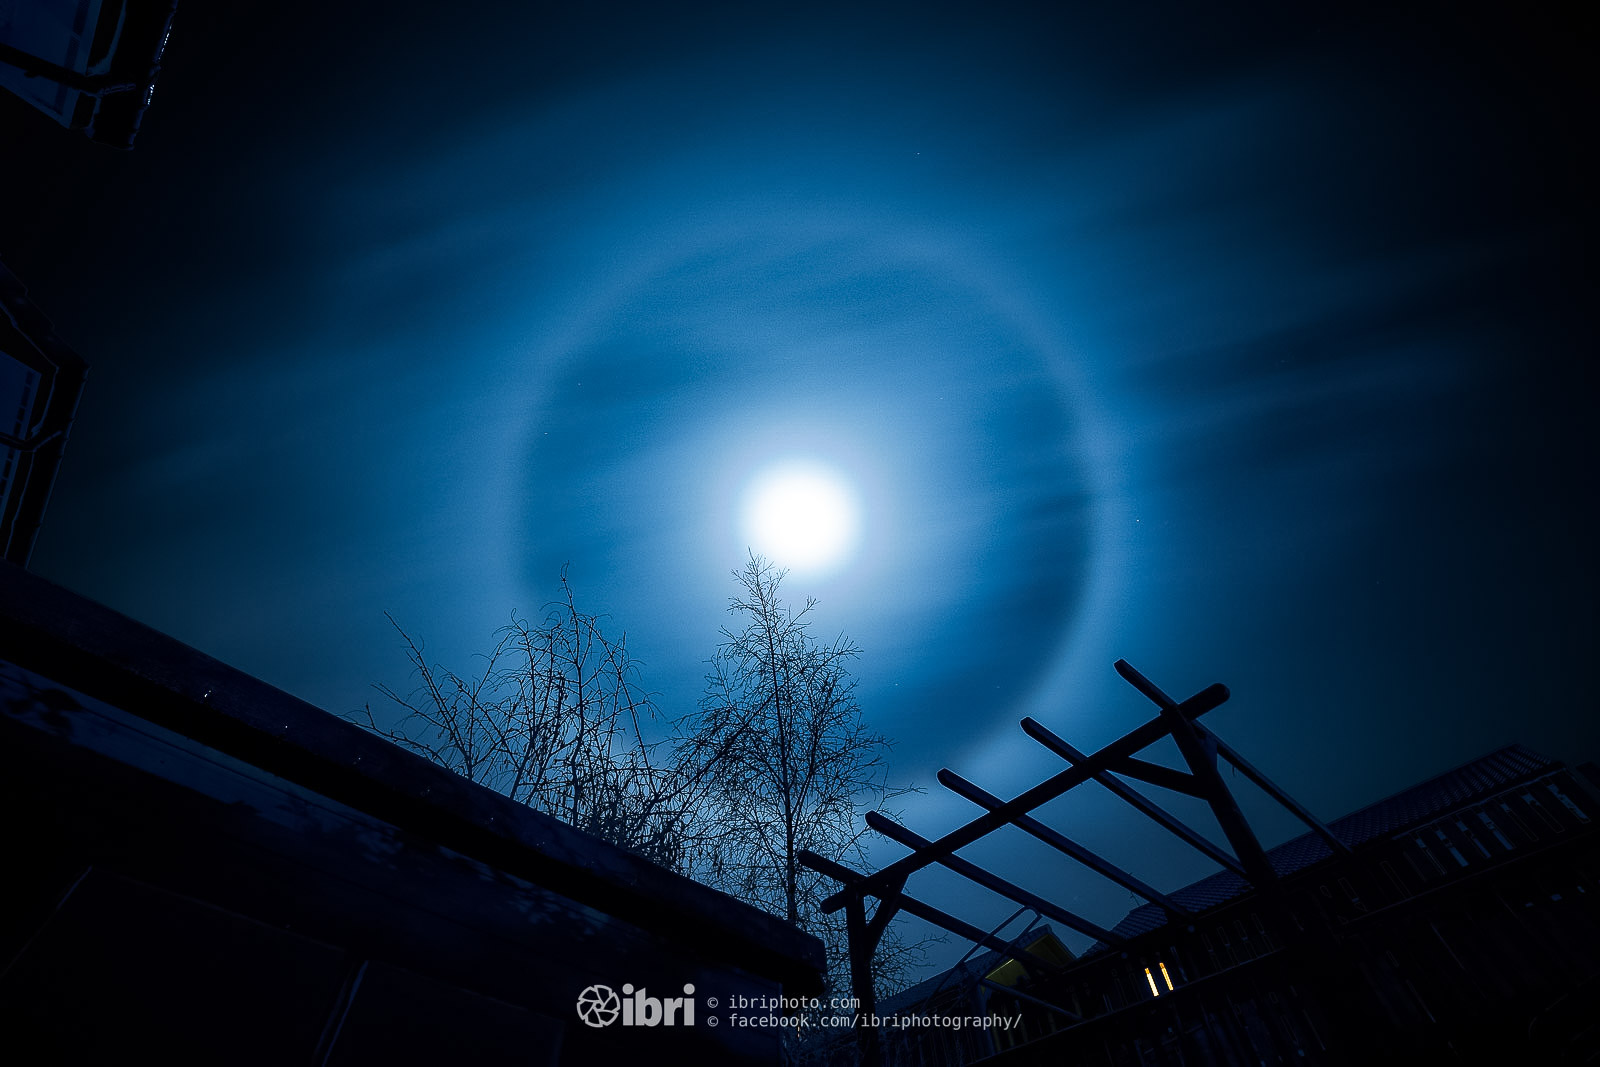 22˚ ice halo shining bright and beautiful around a December morning's  full moon in Scotland.